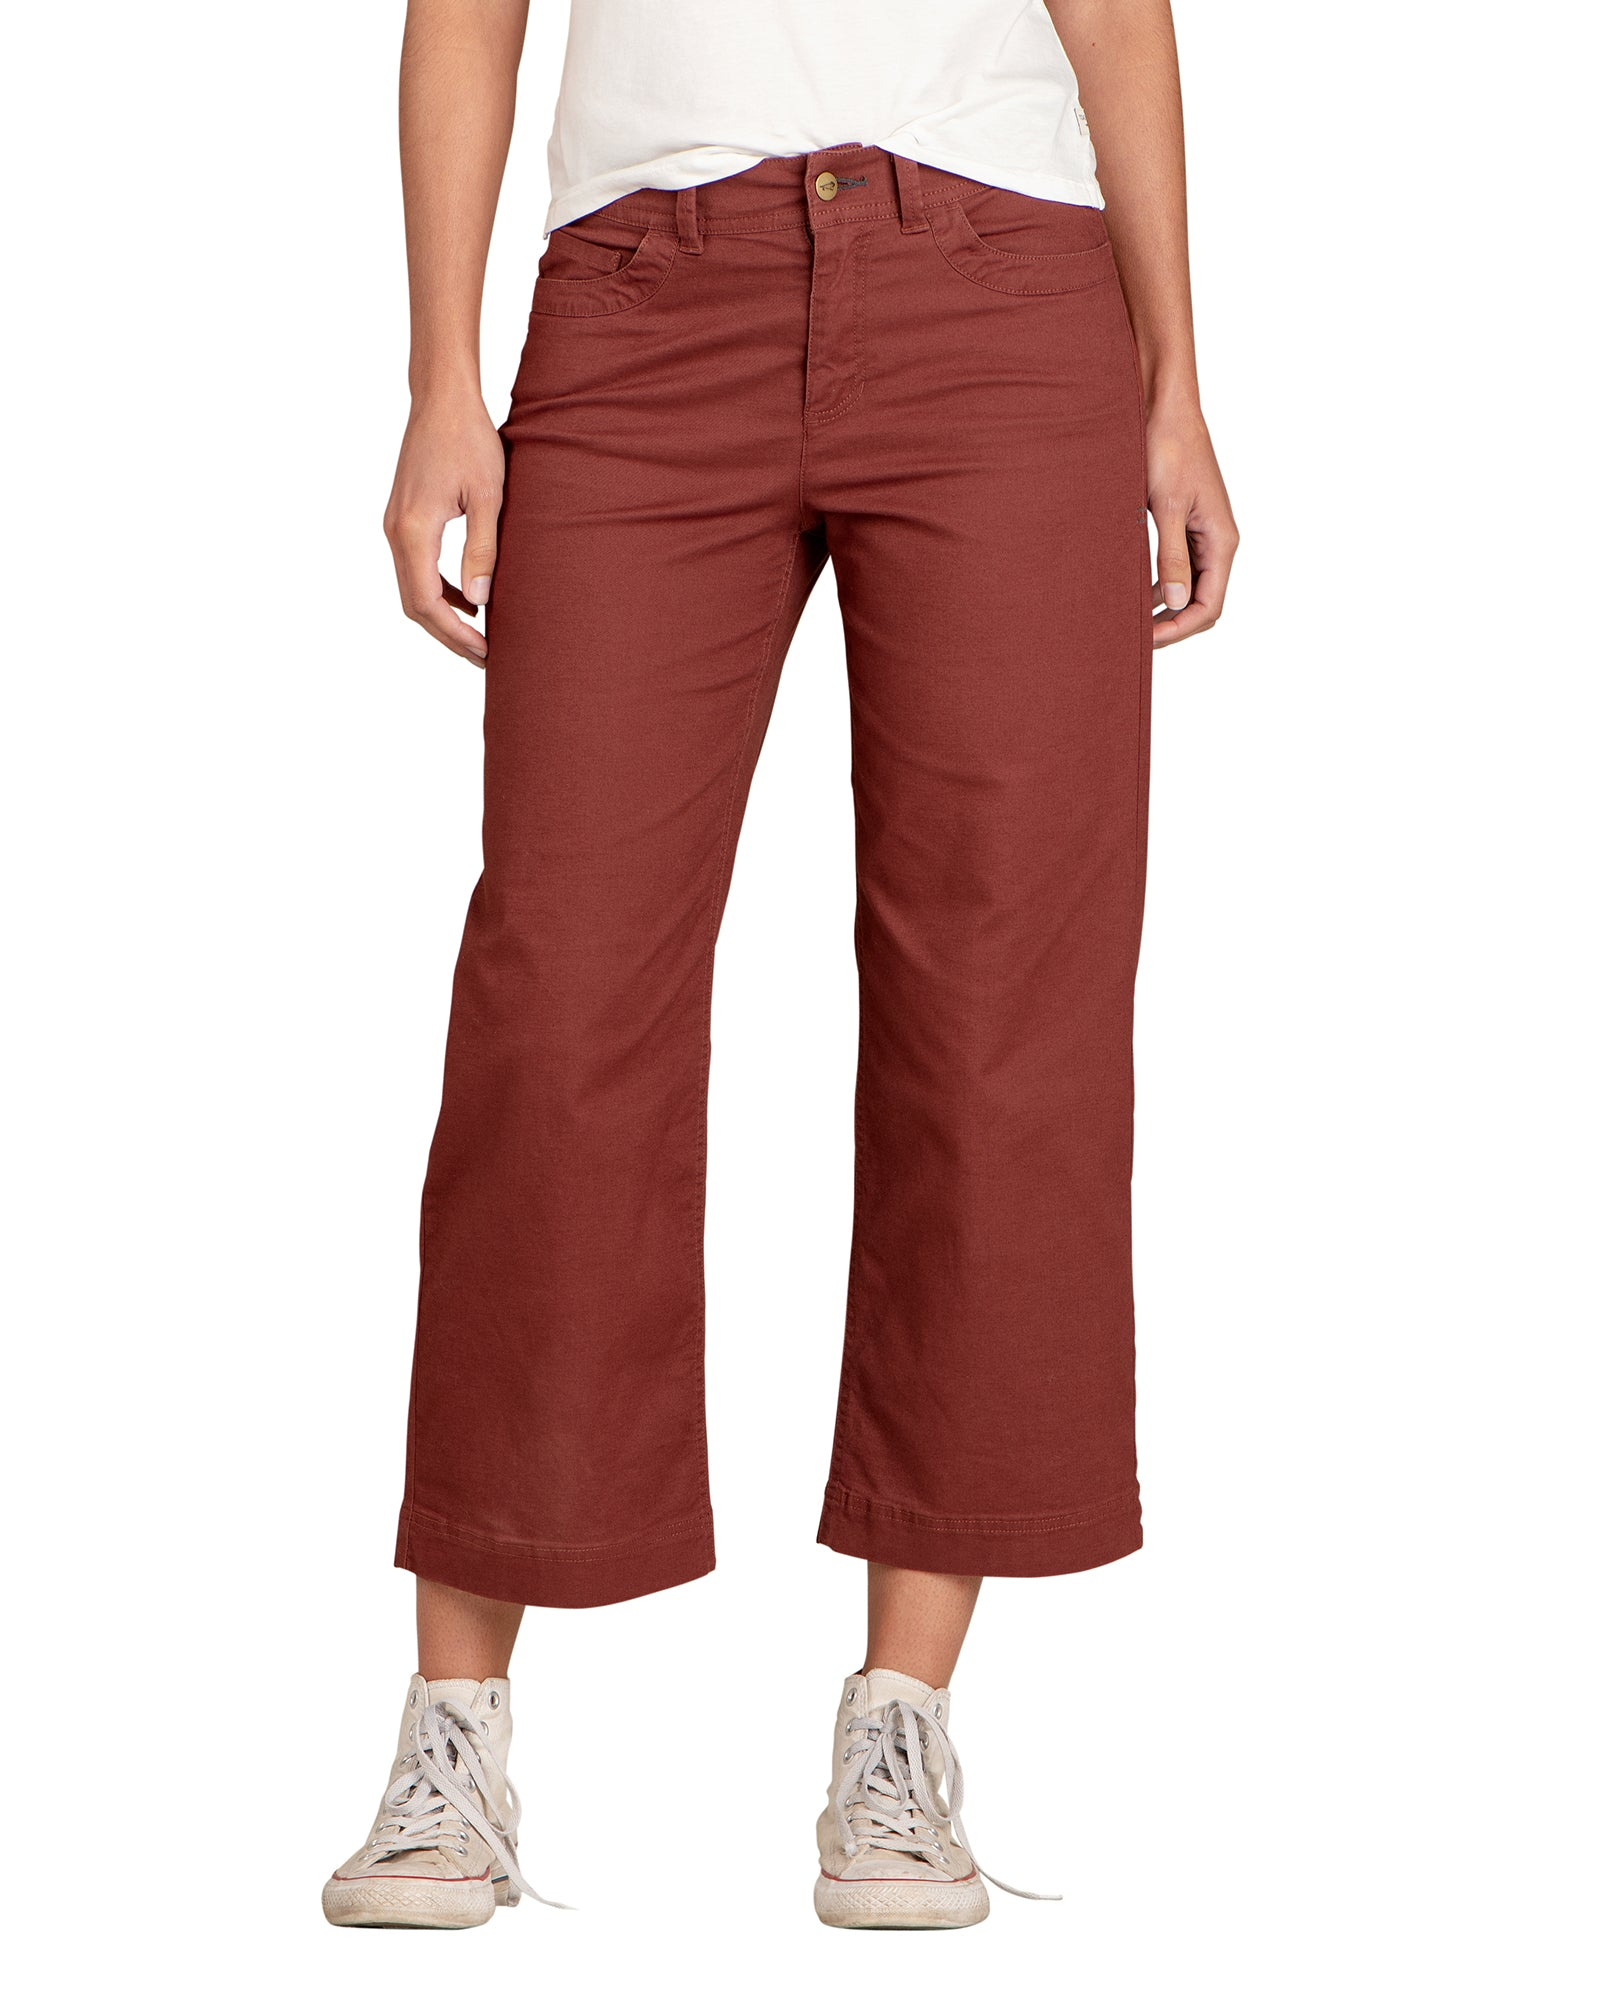 Wide Pants with 4 Functional Pockets